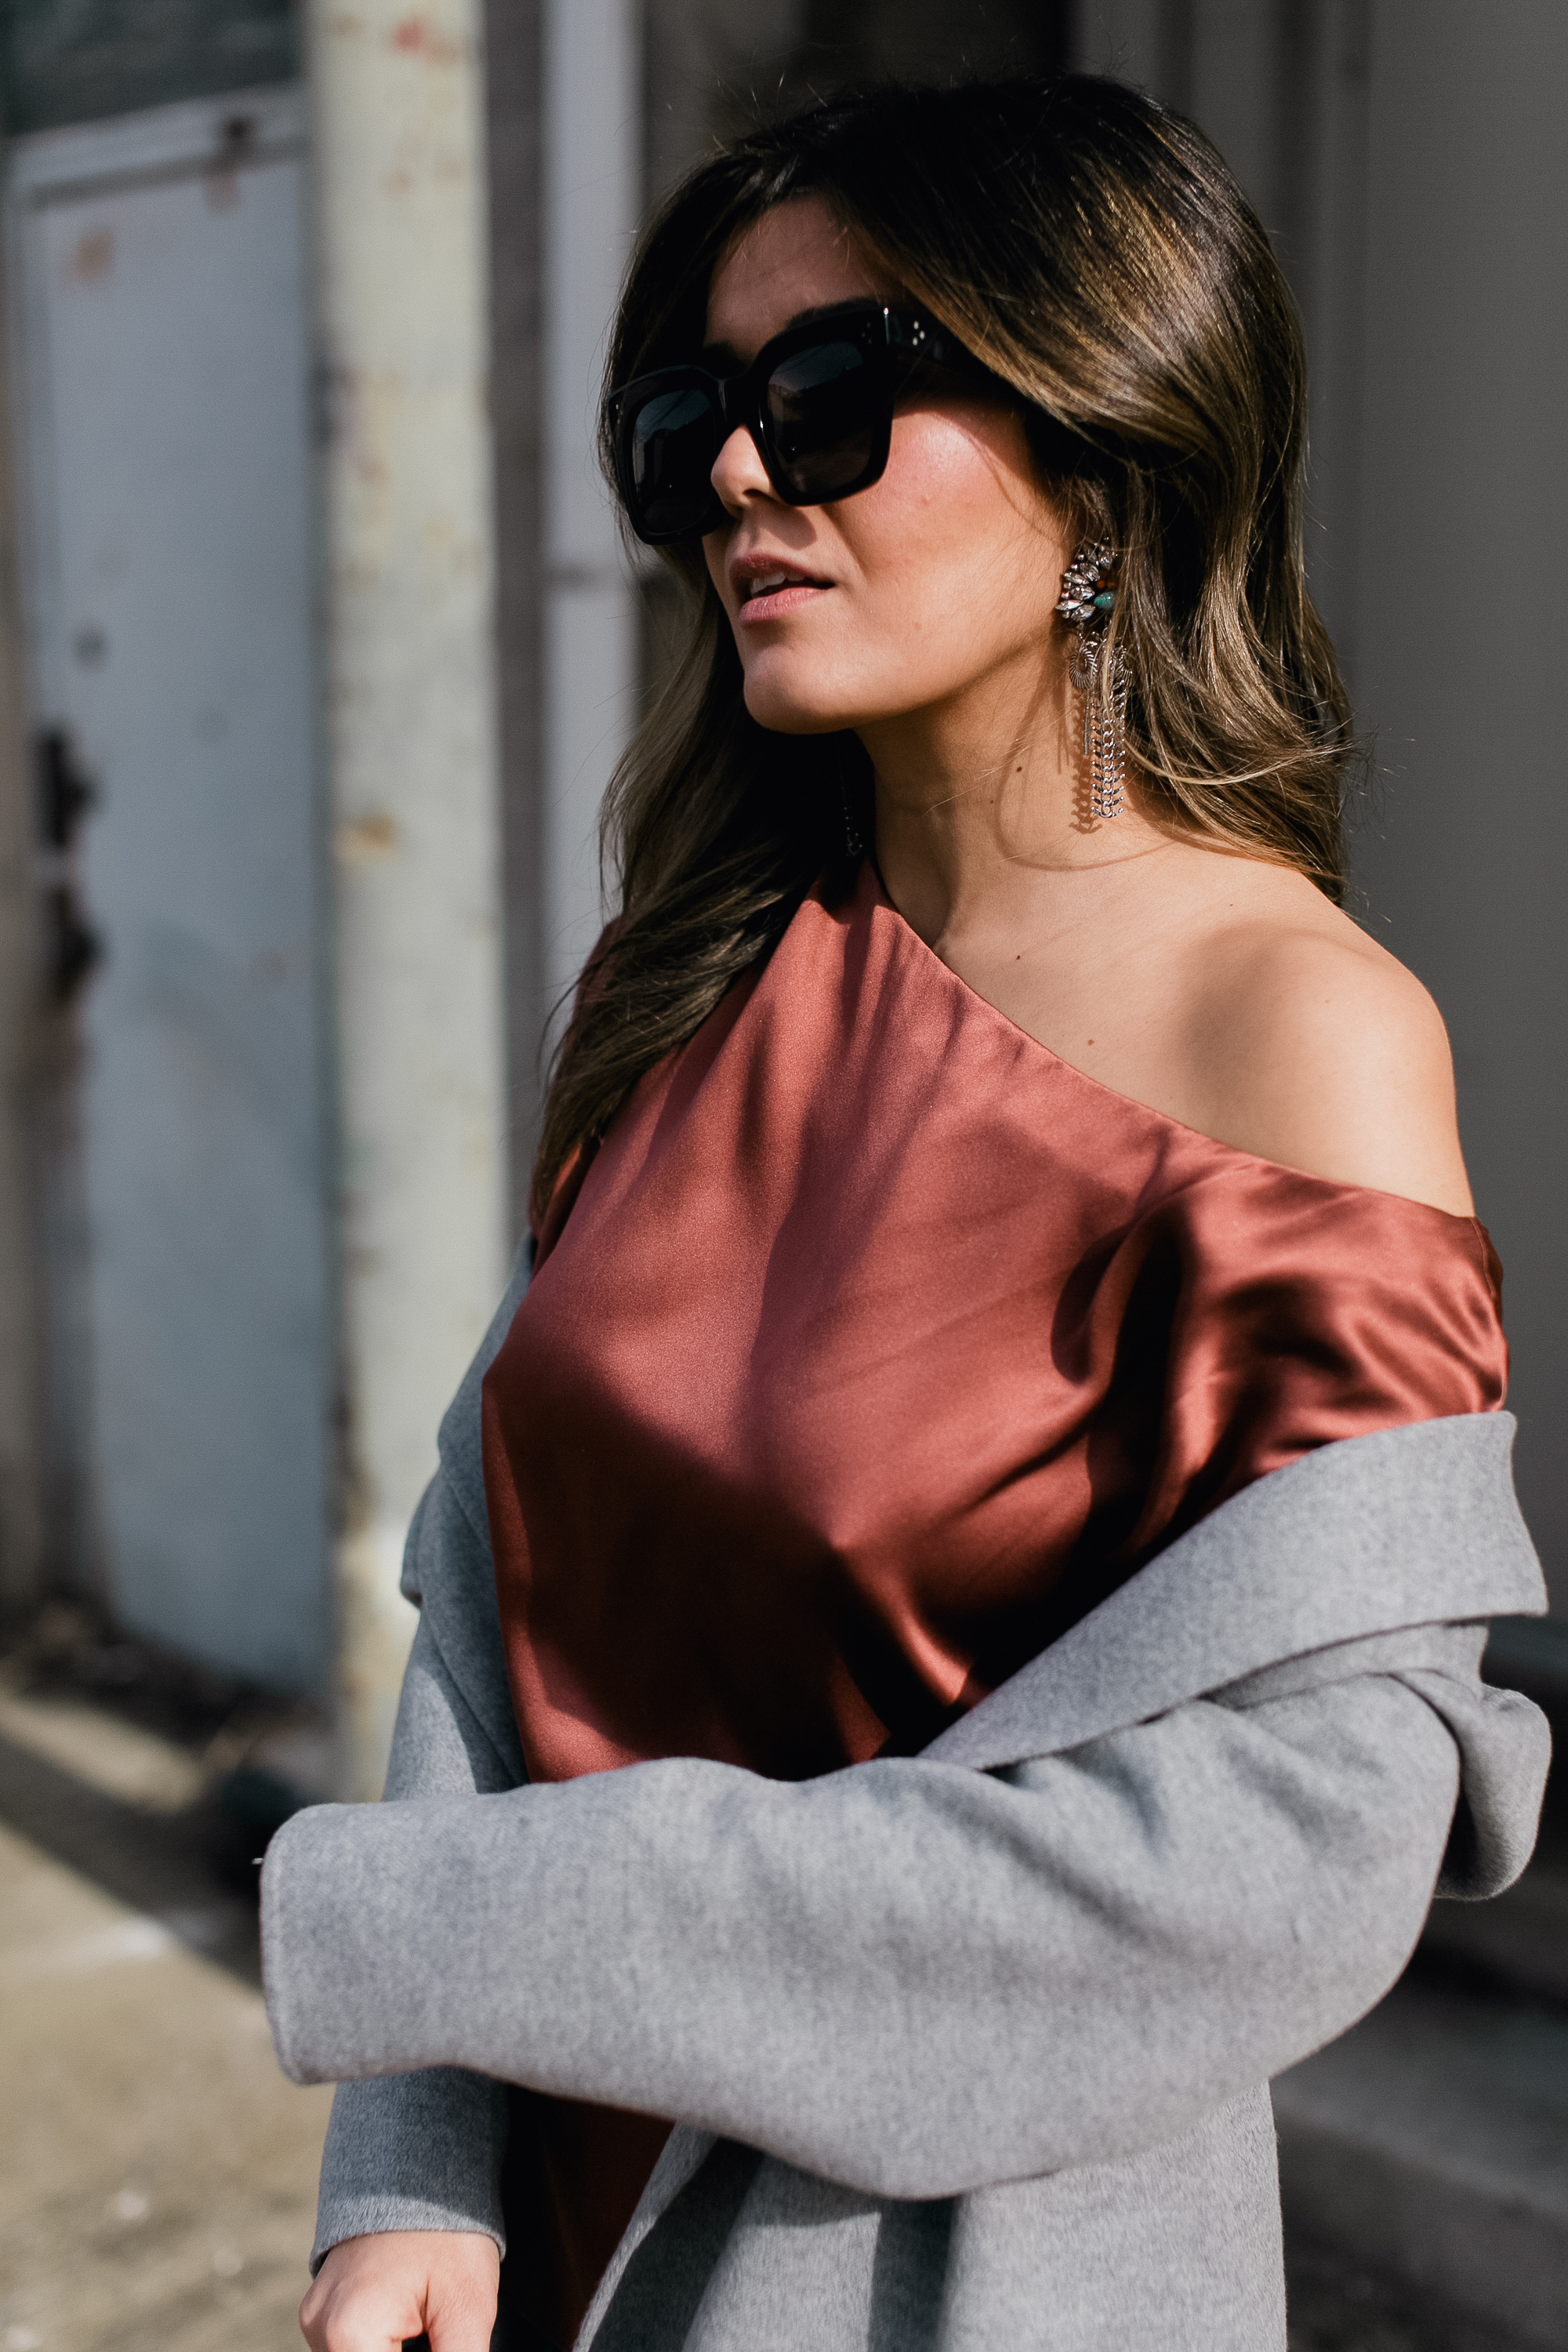 Style MBA Wears Tibi Assymmetrical Top from Net-A-Porter